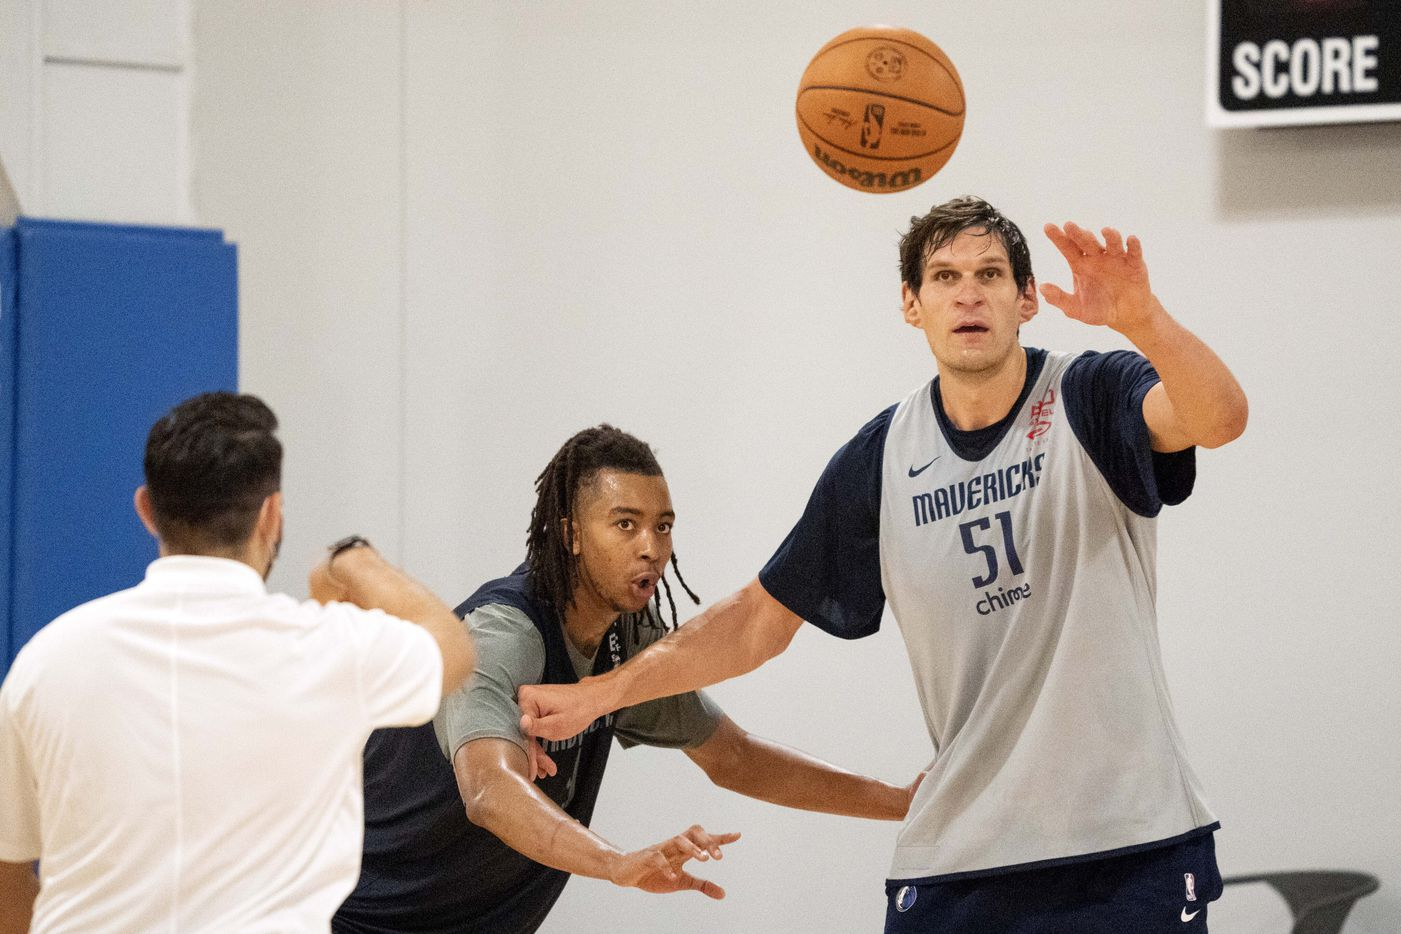 Dallas Mavericks centers Moses Brown, left, and Boban Marjanović (51) compete in a one-on-one drill during a training camp practice Wednesday, September 29, 2021 at the Dallas Mavericks Training Center in Dallas. (Jeffrey McWhorter/Special Contributor)